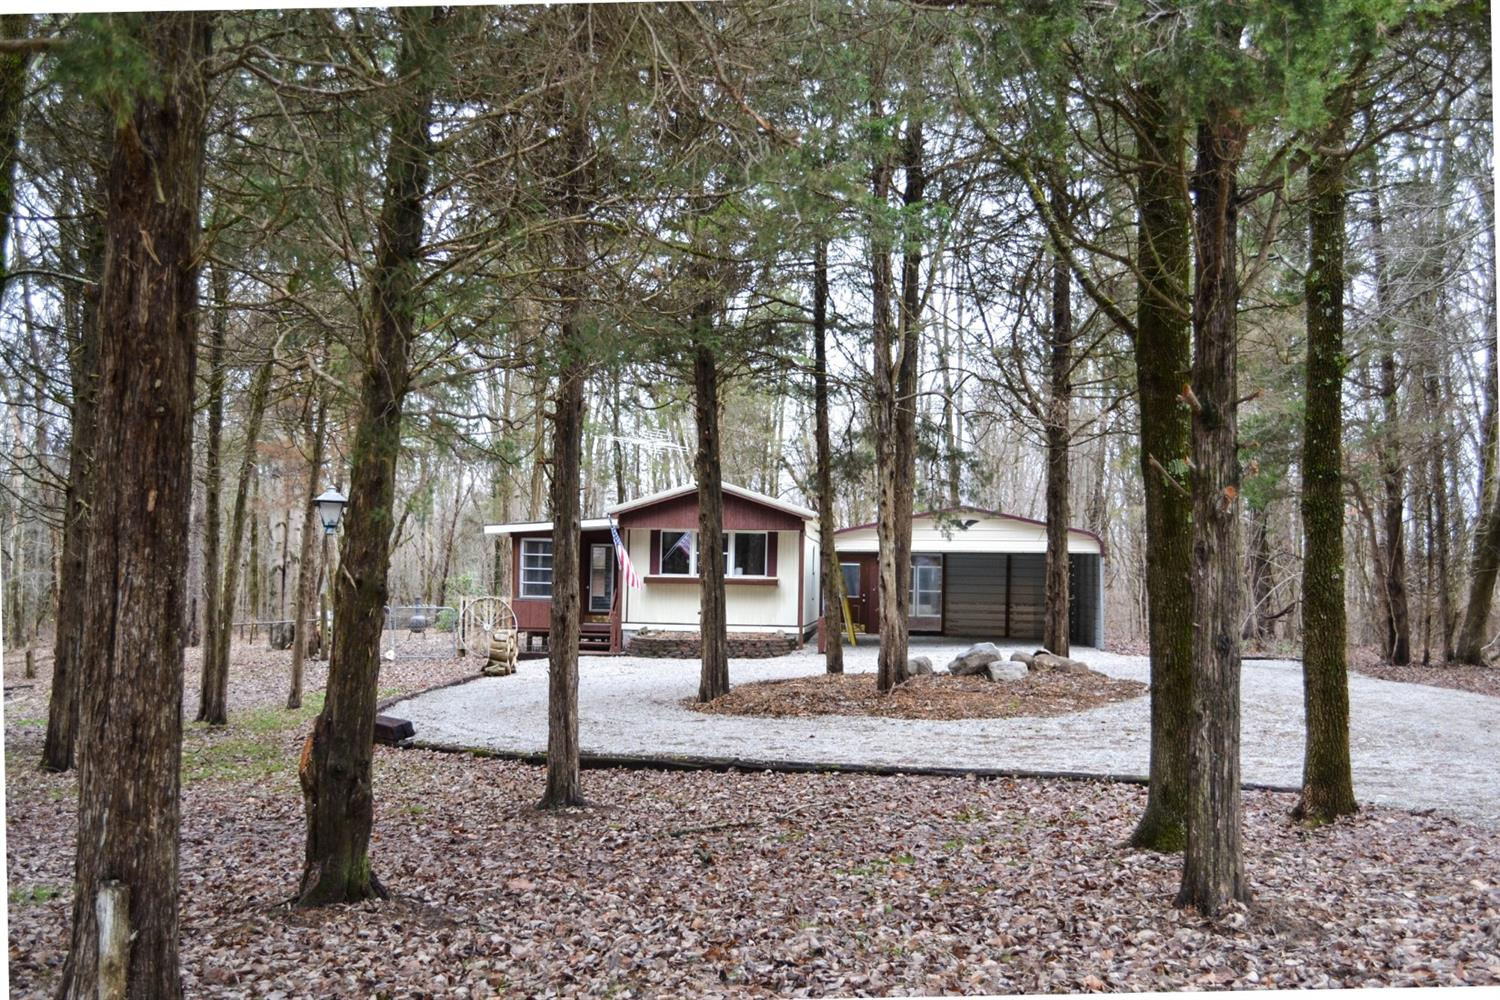 Beautiful wooded setting on 1.58 acres.  Remodeled-move in condition.  14x70 mobile home (980 sf) with stick built addition (384sf partially finished).  The addition has a 17x12 finished room with closet that could be a bedroom or family room. 3 season sun room with lots of windows and carpet.  Gas furnace and hot water heater brand new as well as a new metal roof.   20x12 outbuilding.